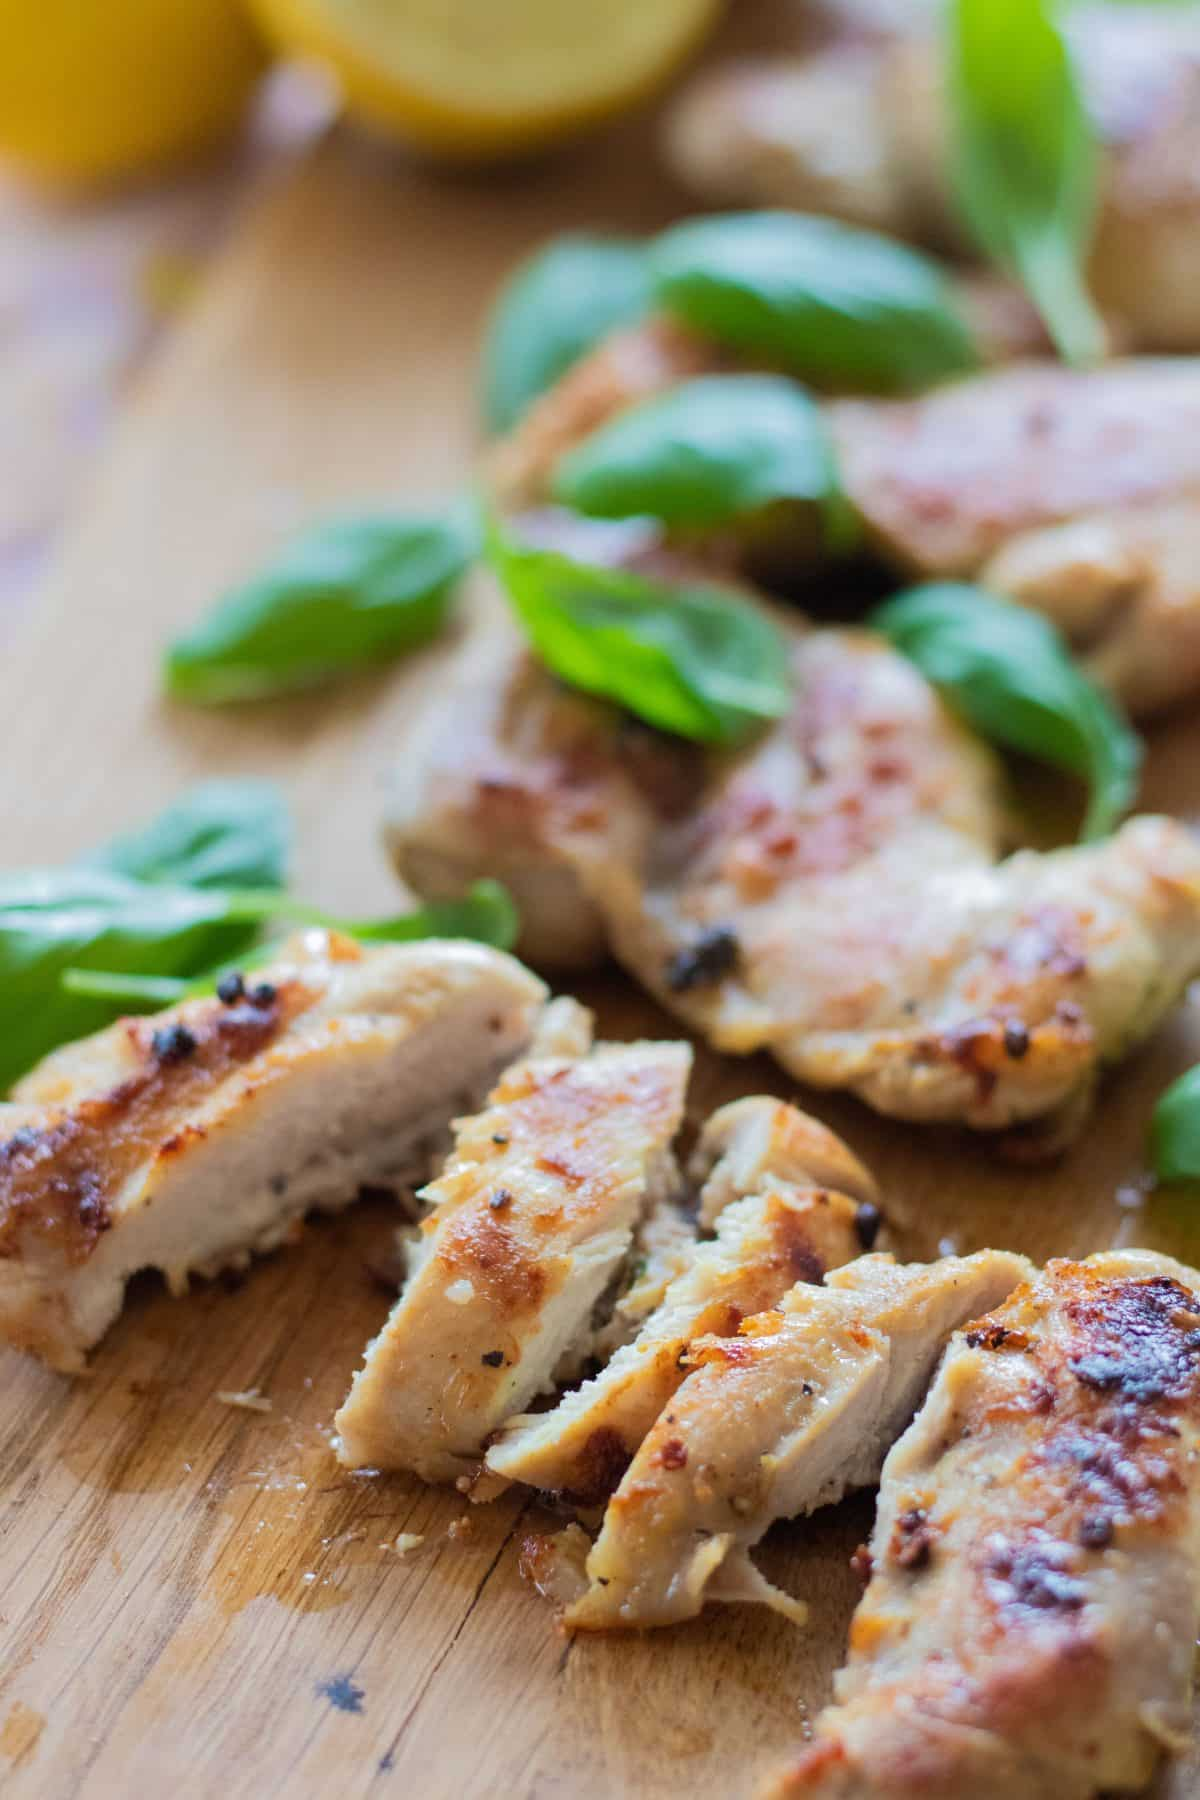 sideview of sliced grilled chicken marinated with lemon and decorated with basil leaves